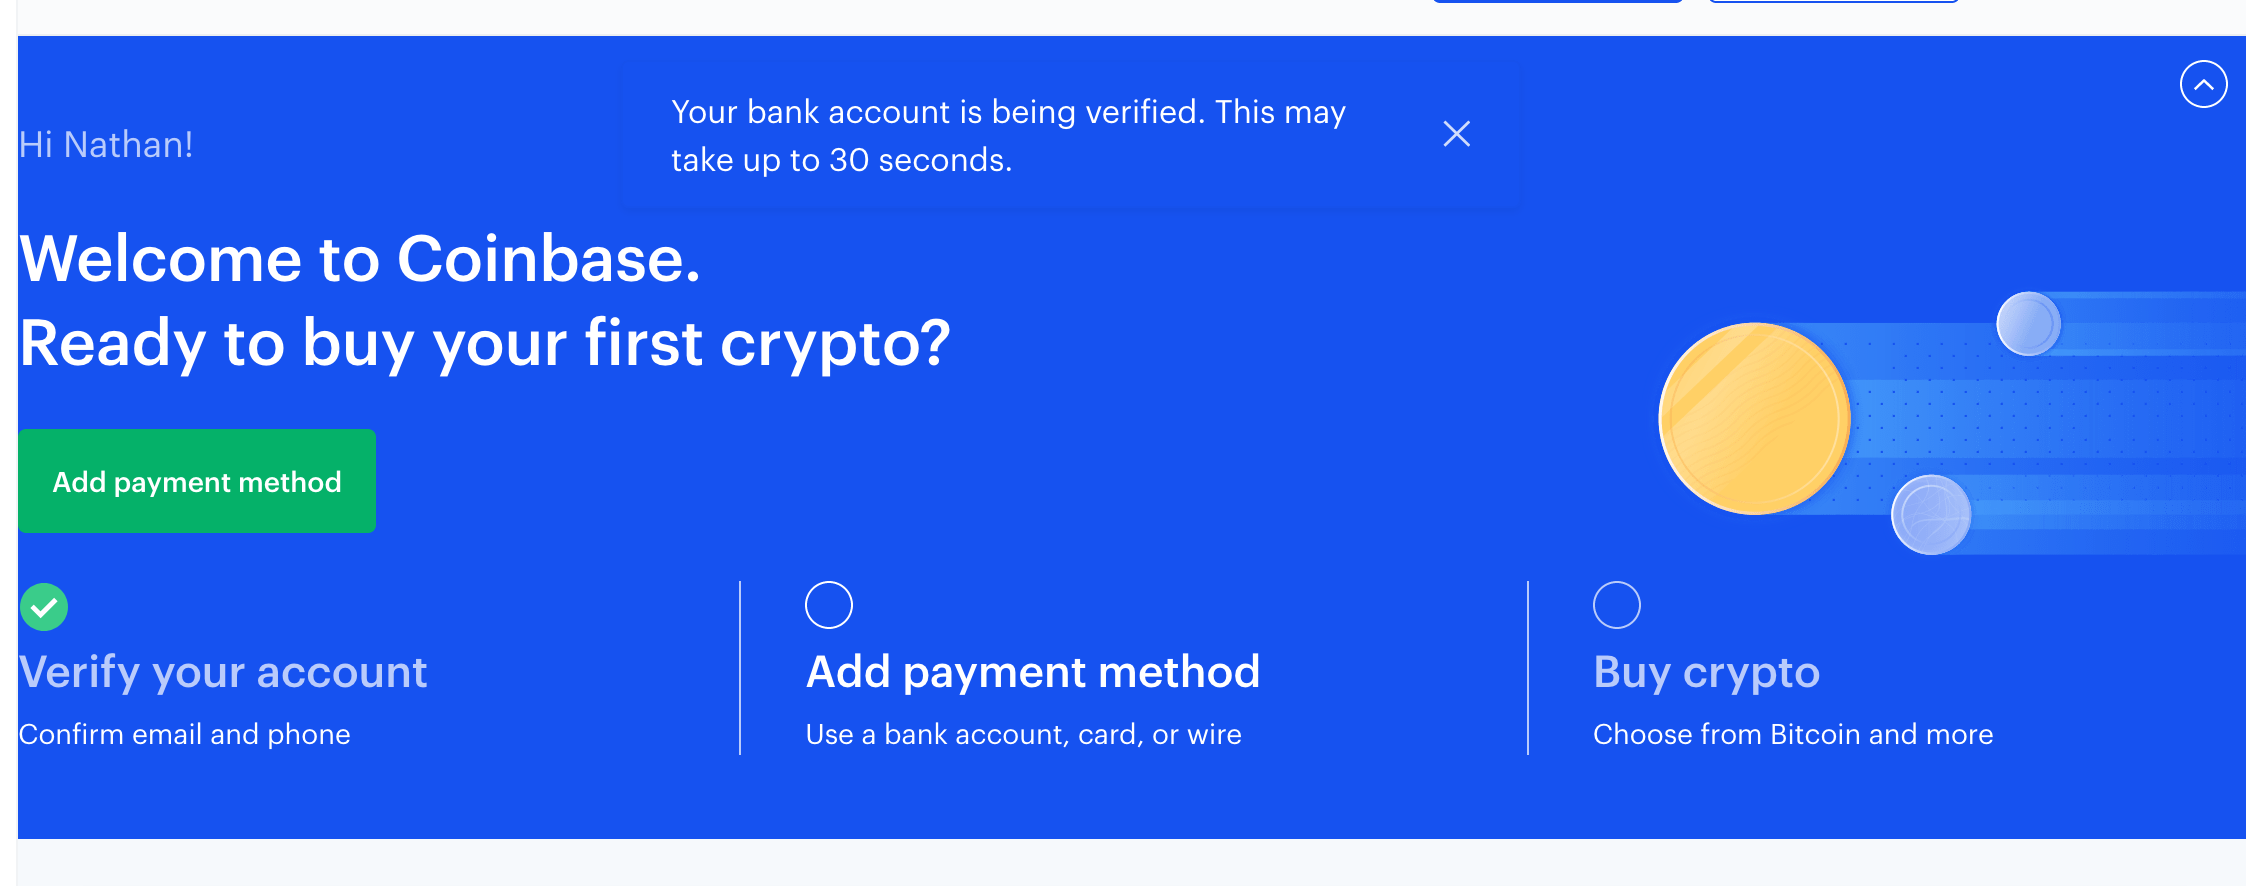 Reiff Coinbase verification waiting screenshot